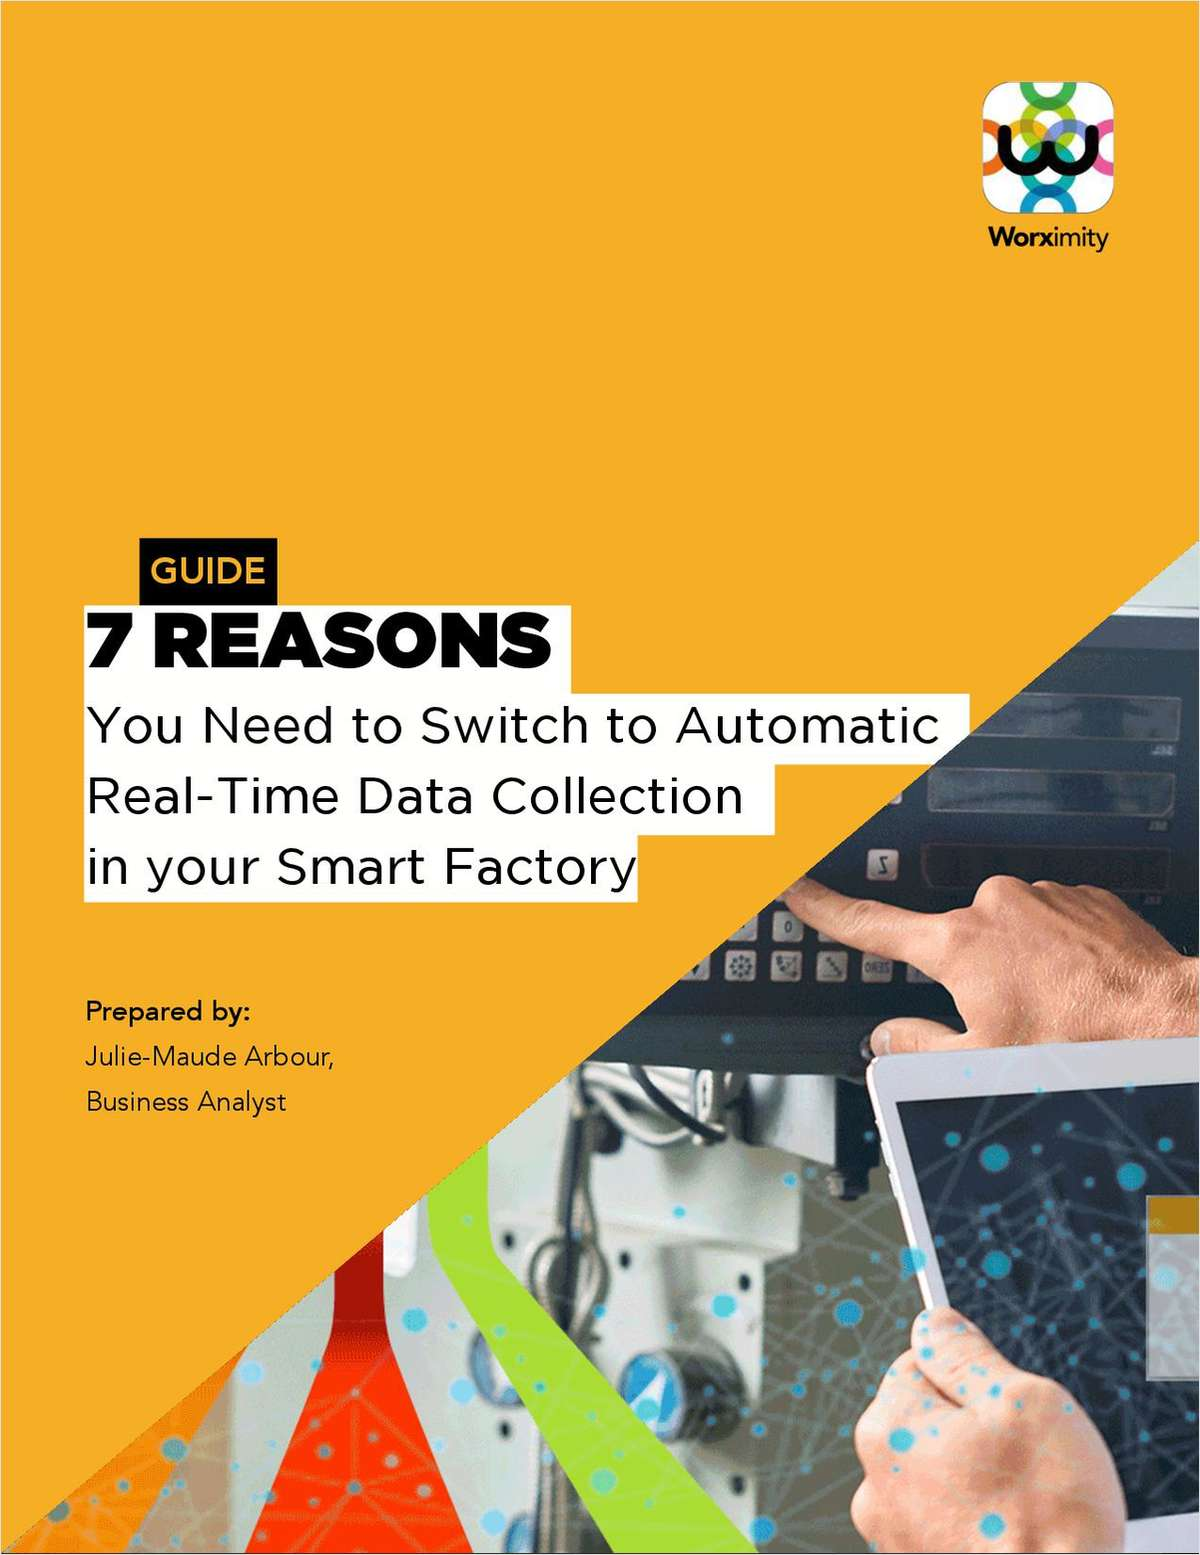 7 Reasons You Need to Switch to Automatic Real-time Data Collection in Your Smart Factory